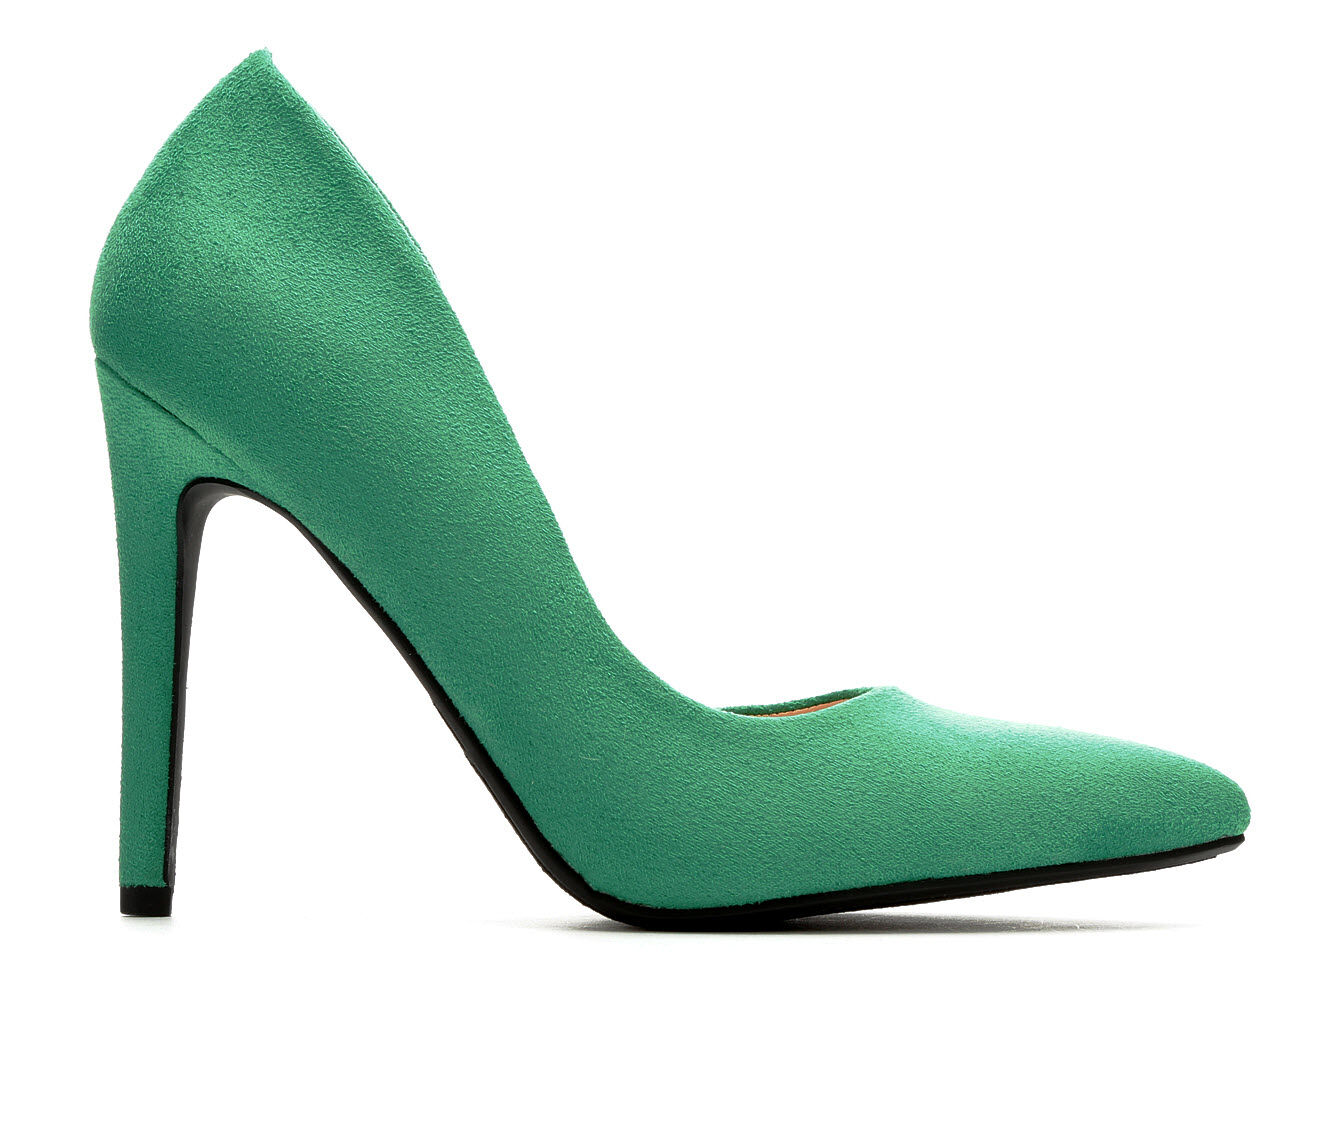 choose new style Women's Delicious Stephanie Pumps Emerald Micro